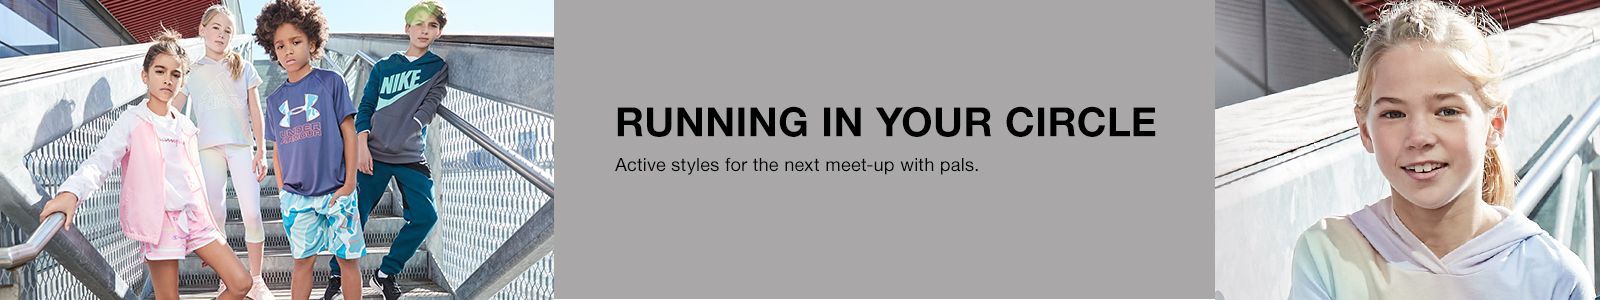 Running in Your Circle, Active styles for the next meet-up with pals